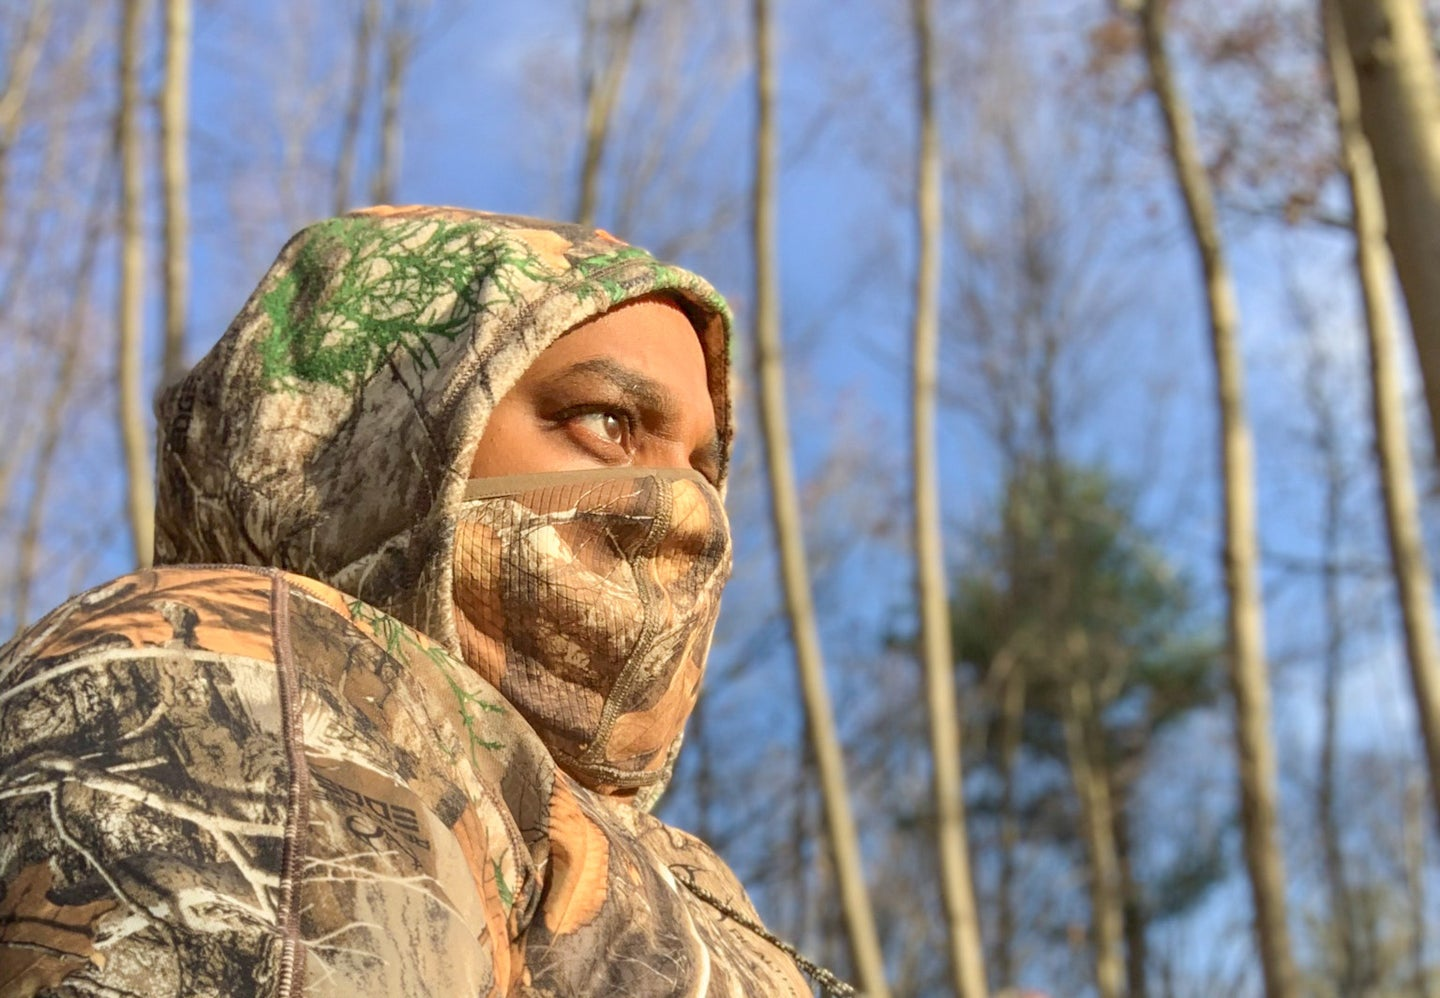 There are plenty of reasons for rookies to help out other new hunters.